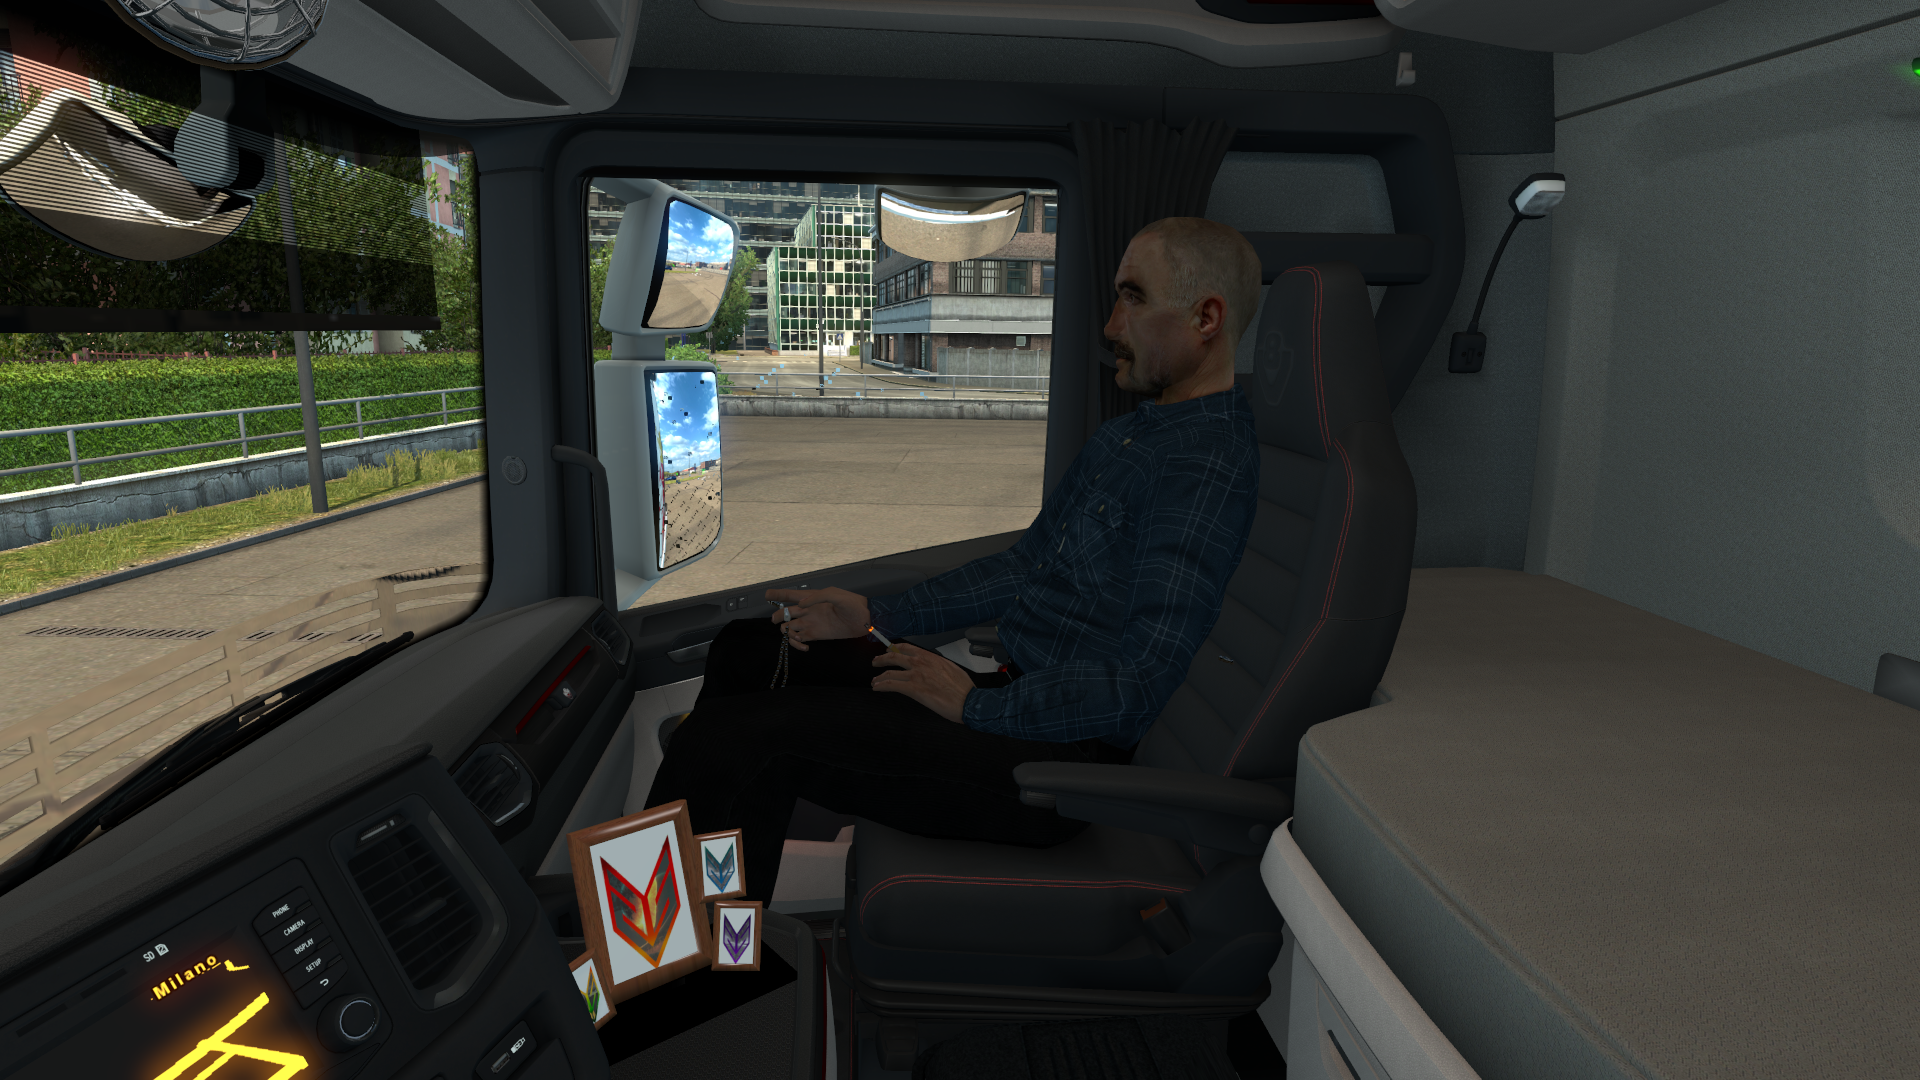 ets2_20180607_181601_00.png